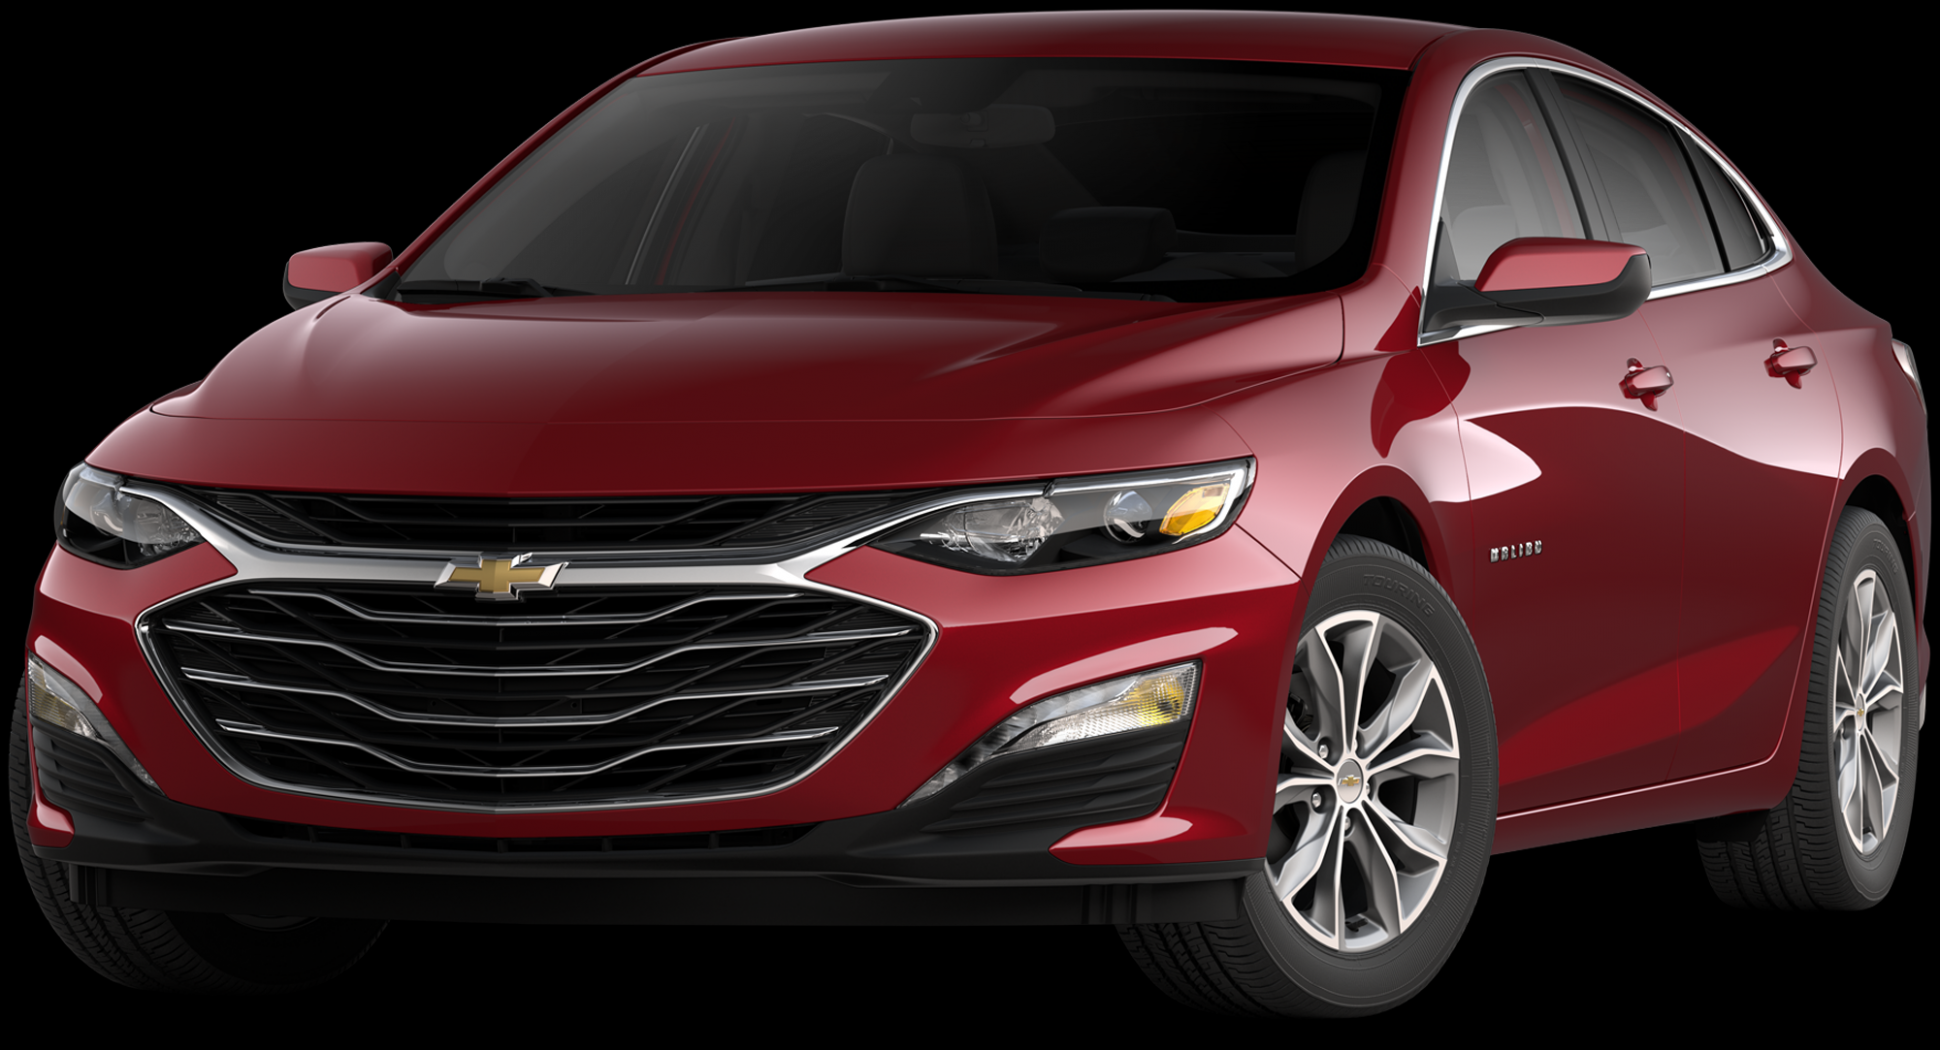 9 Chevrolet Malibu Hybrid Incentives, Specials & Offers in ...